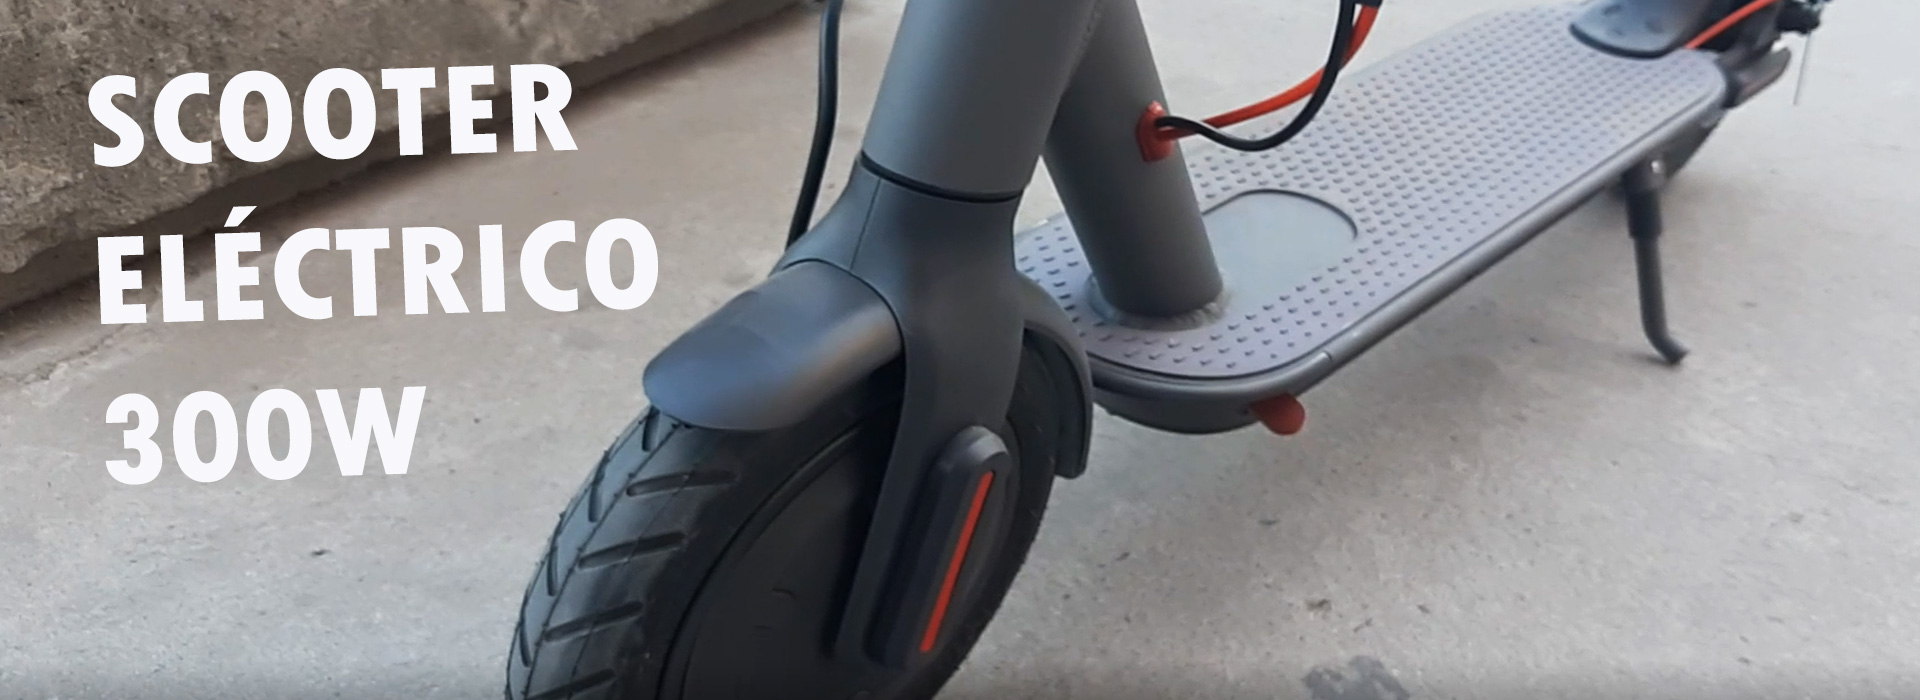 Scooter eléctrico 300w